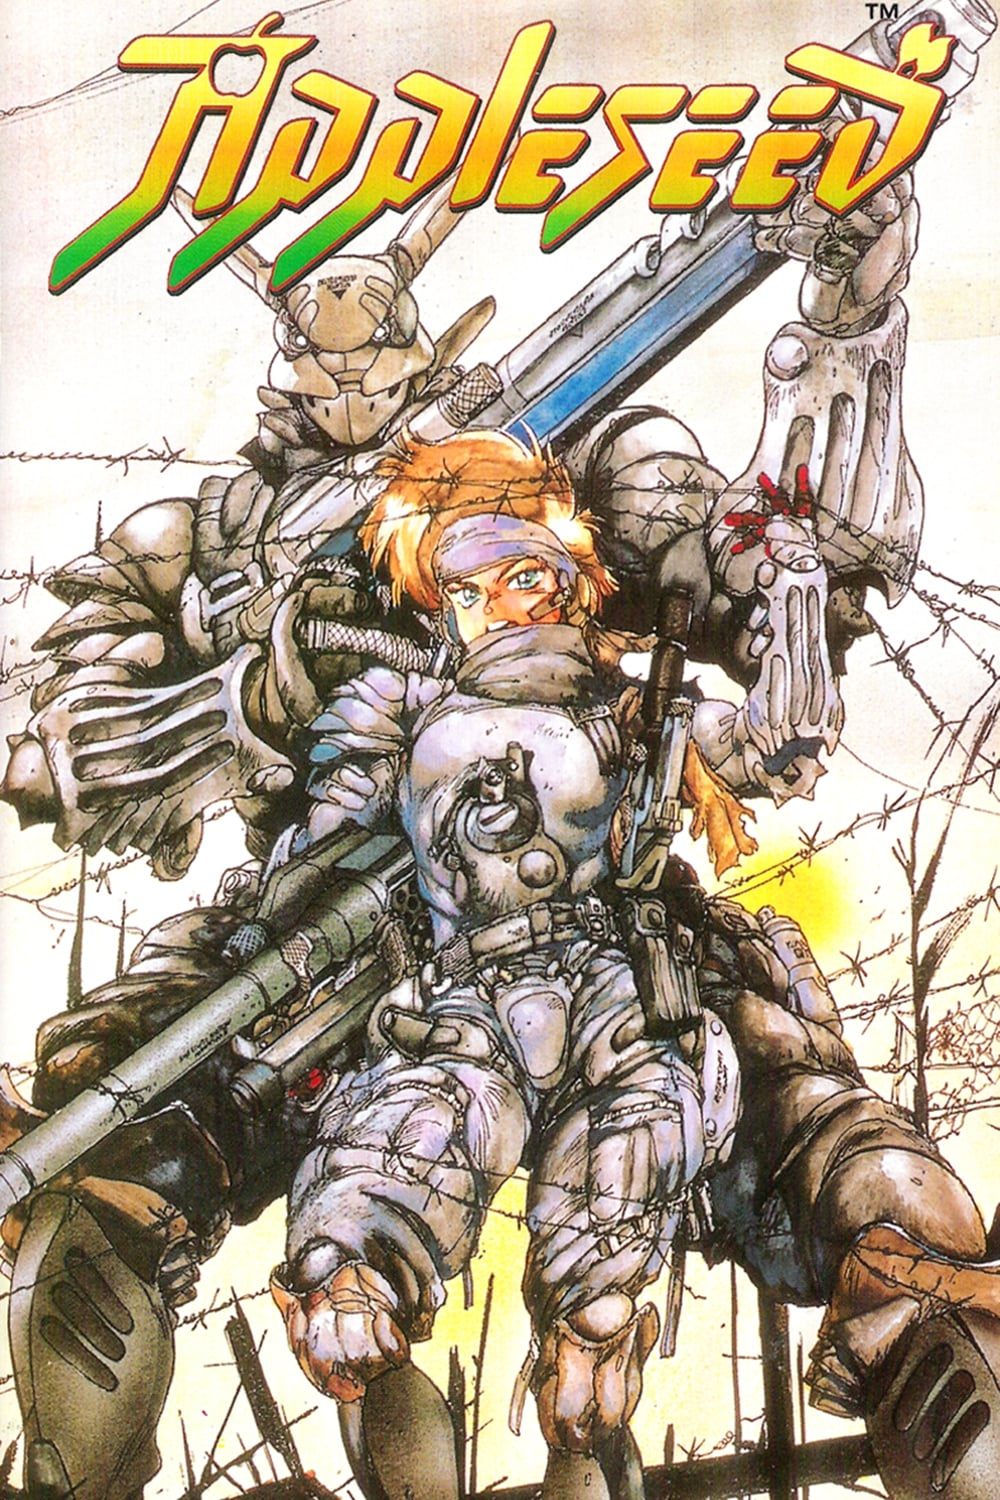 Appleseed Film